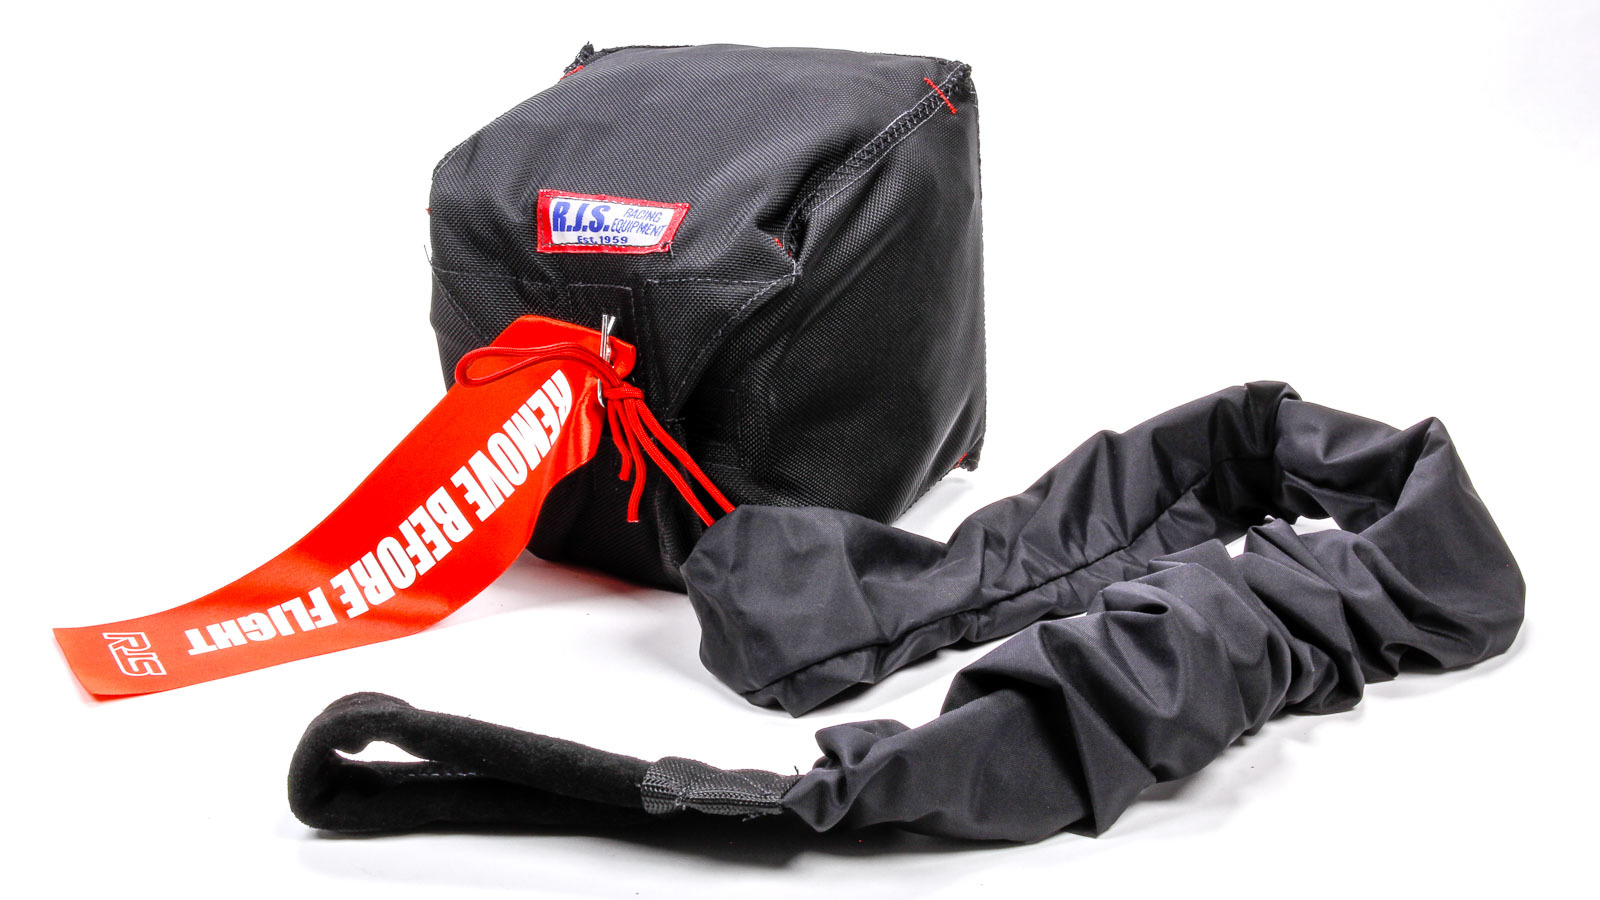 Rjs Safety Sportsman Chute W/ Nylon Bag and Pilot Red